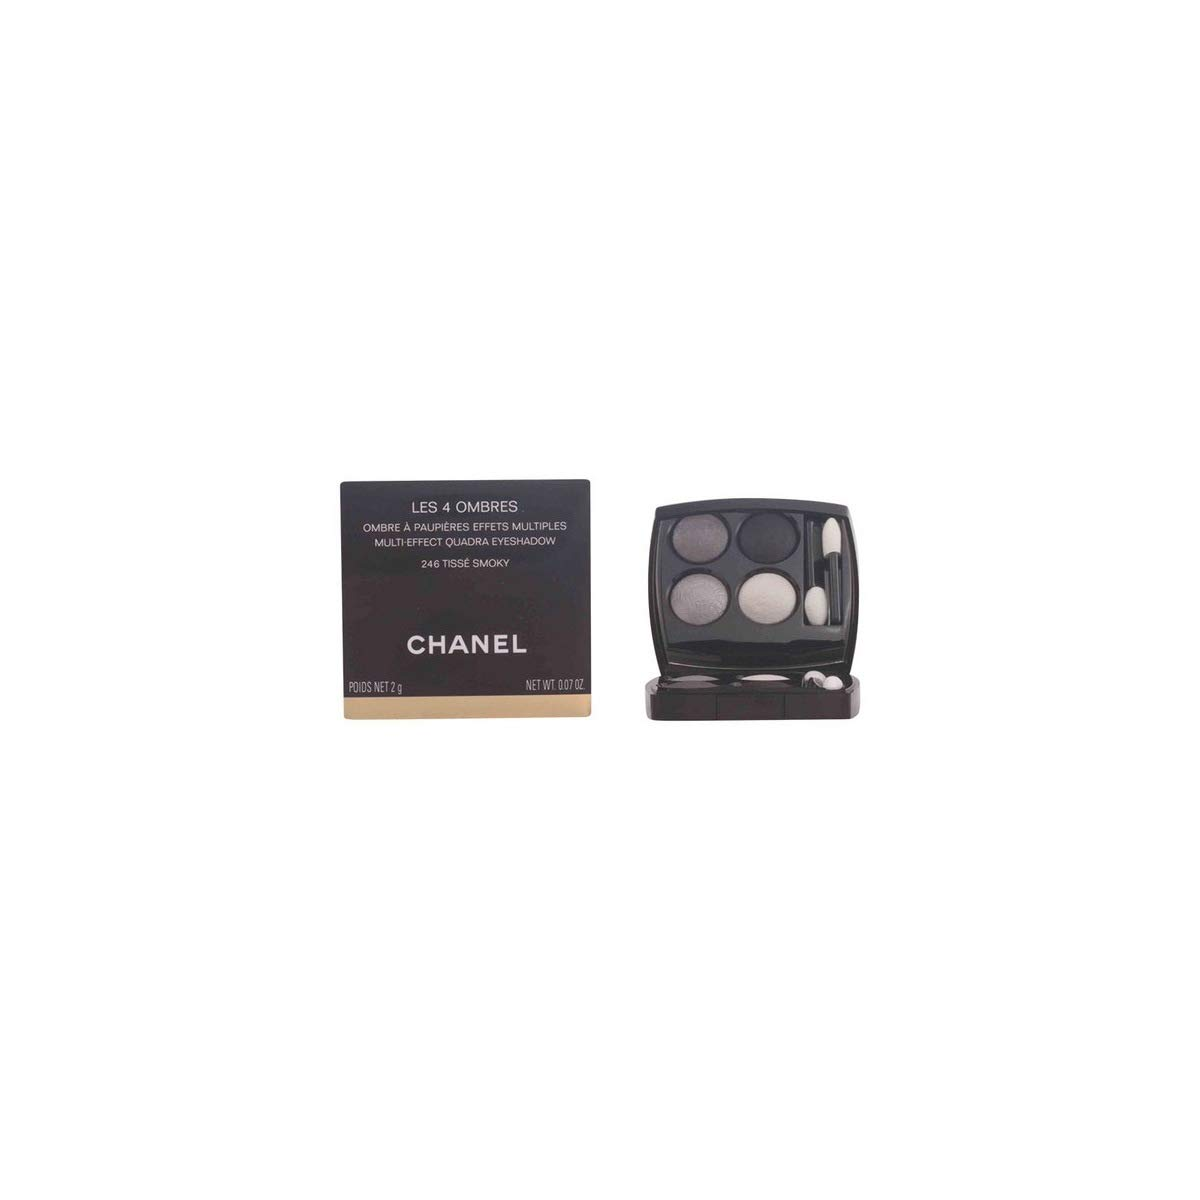 Chanel Les 4 Ombres #322-Blurry Grey - 5 ml: Amazon.es